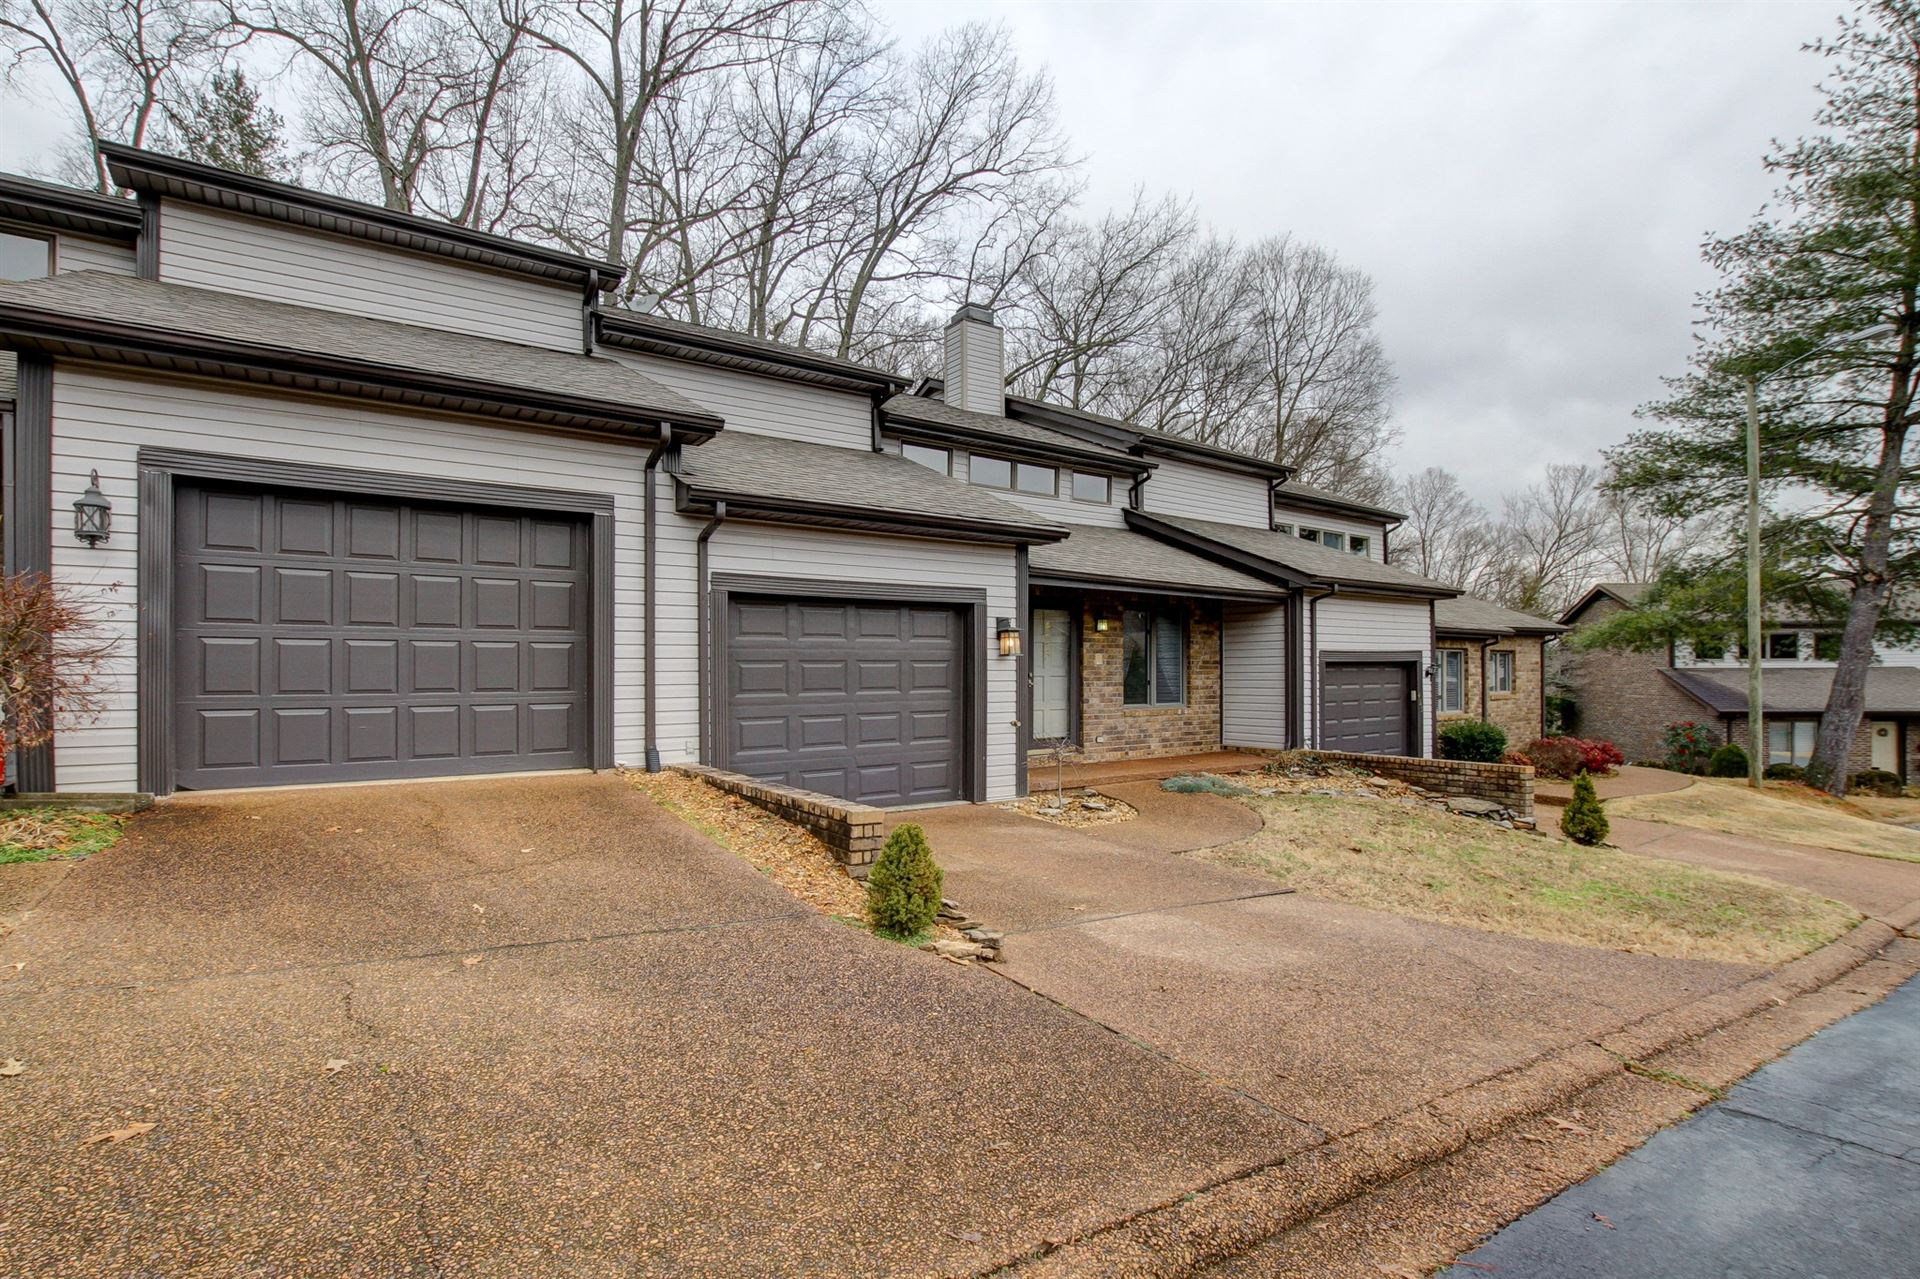 423 Country Club Ct, Clarksville, TN 37043 - MLS#: 2222596